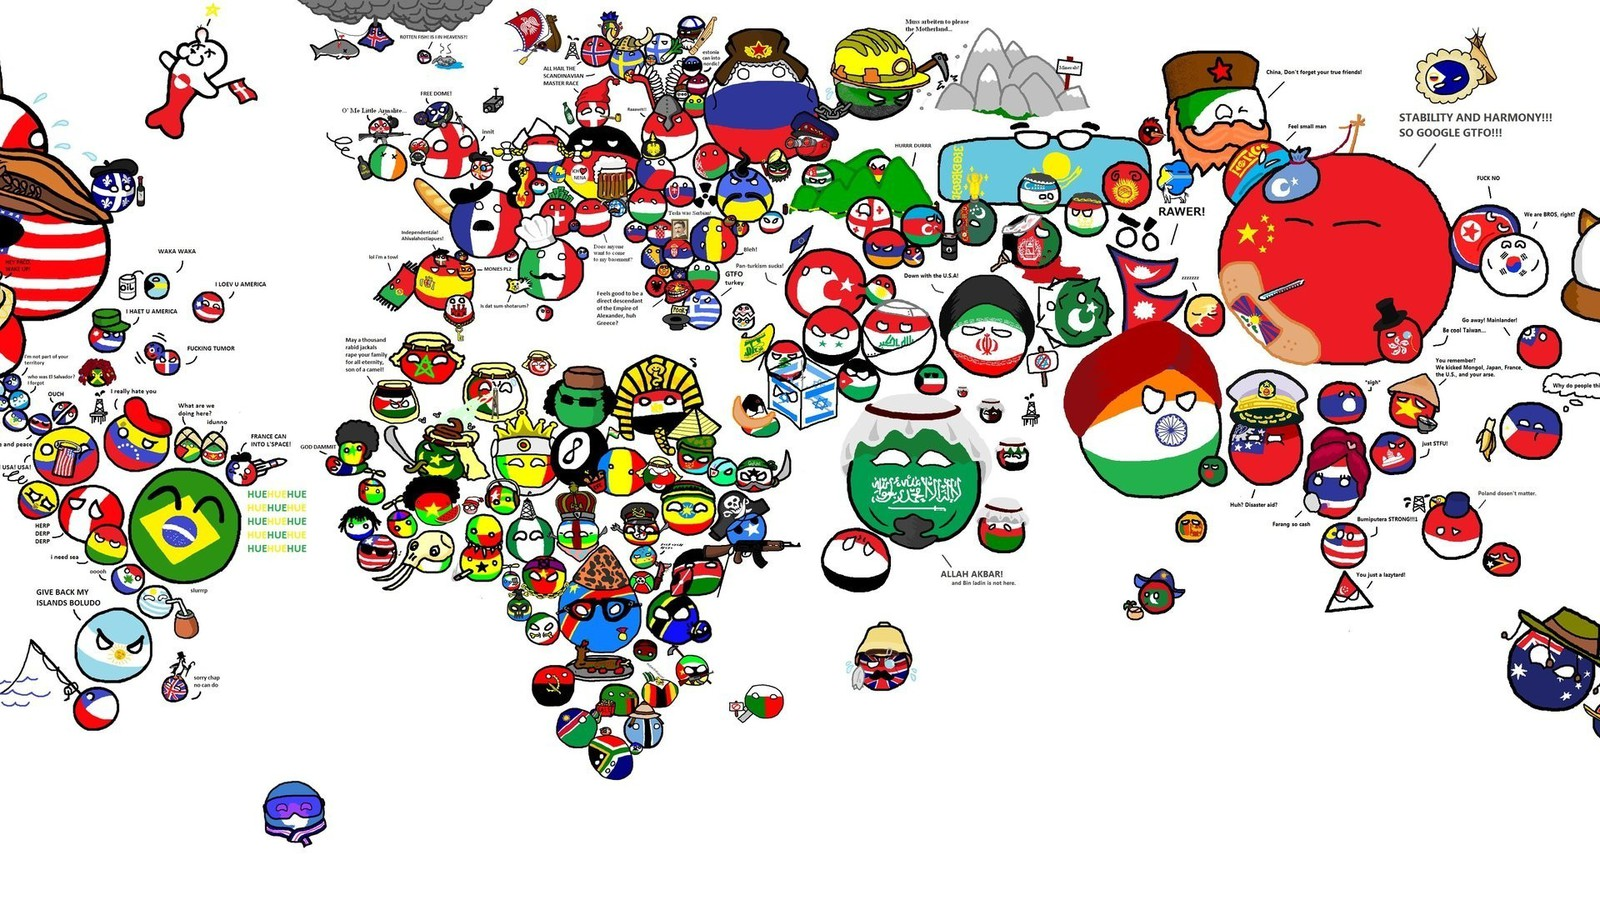 country-countries-1600x900-wallpaper Download Google Map For Pc on android download for pc, pinterest download for pc, google goggles pc,